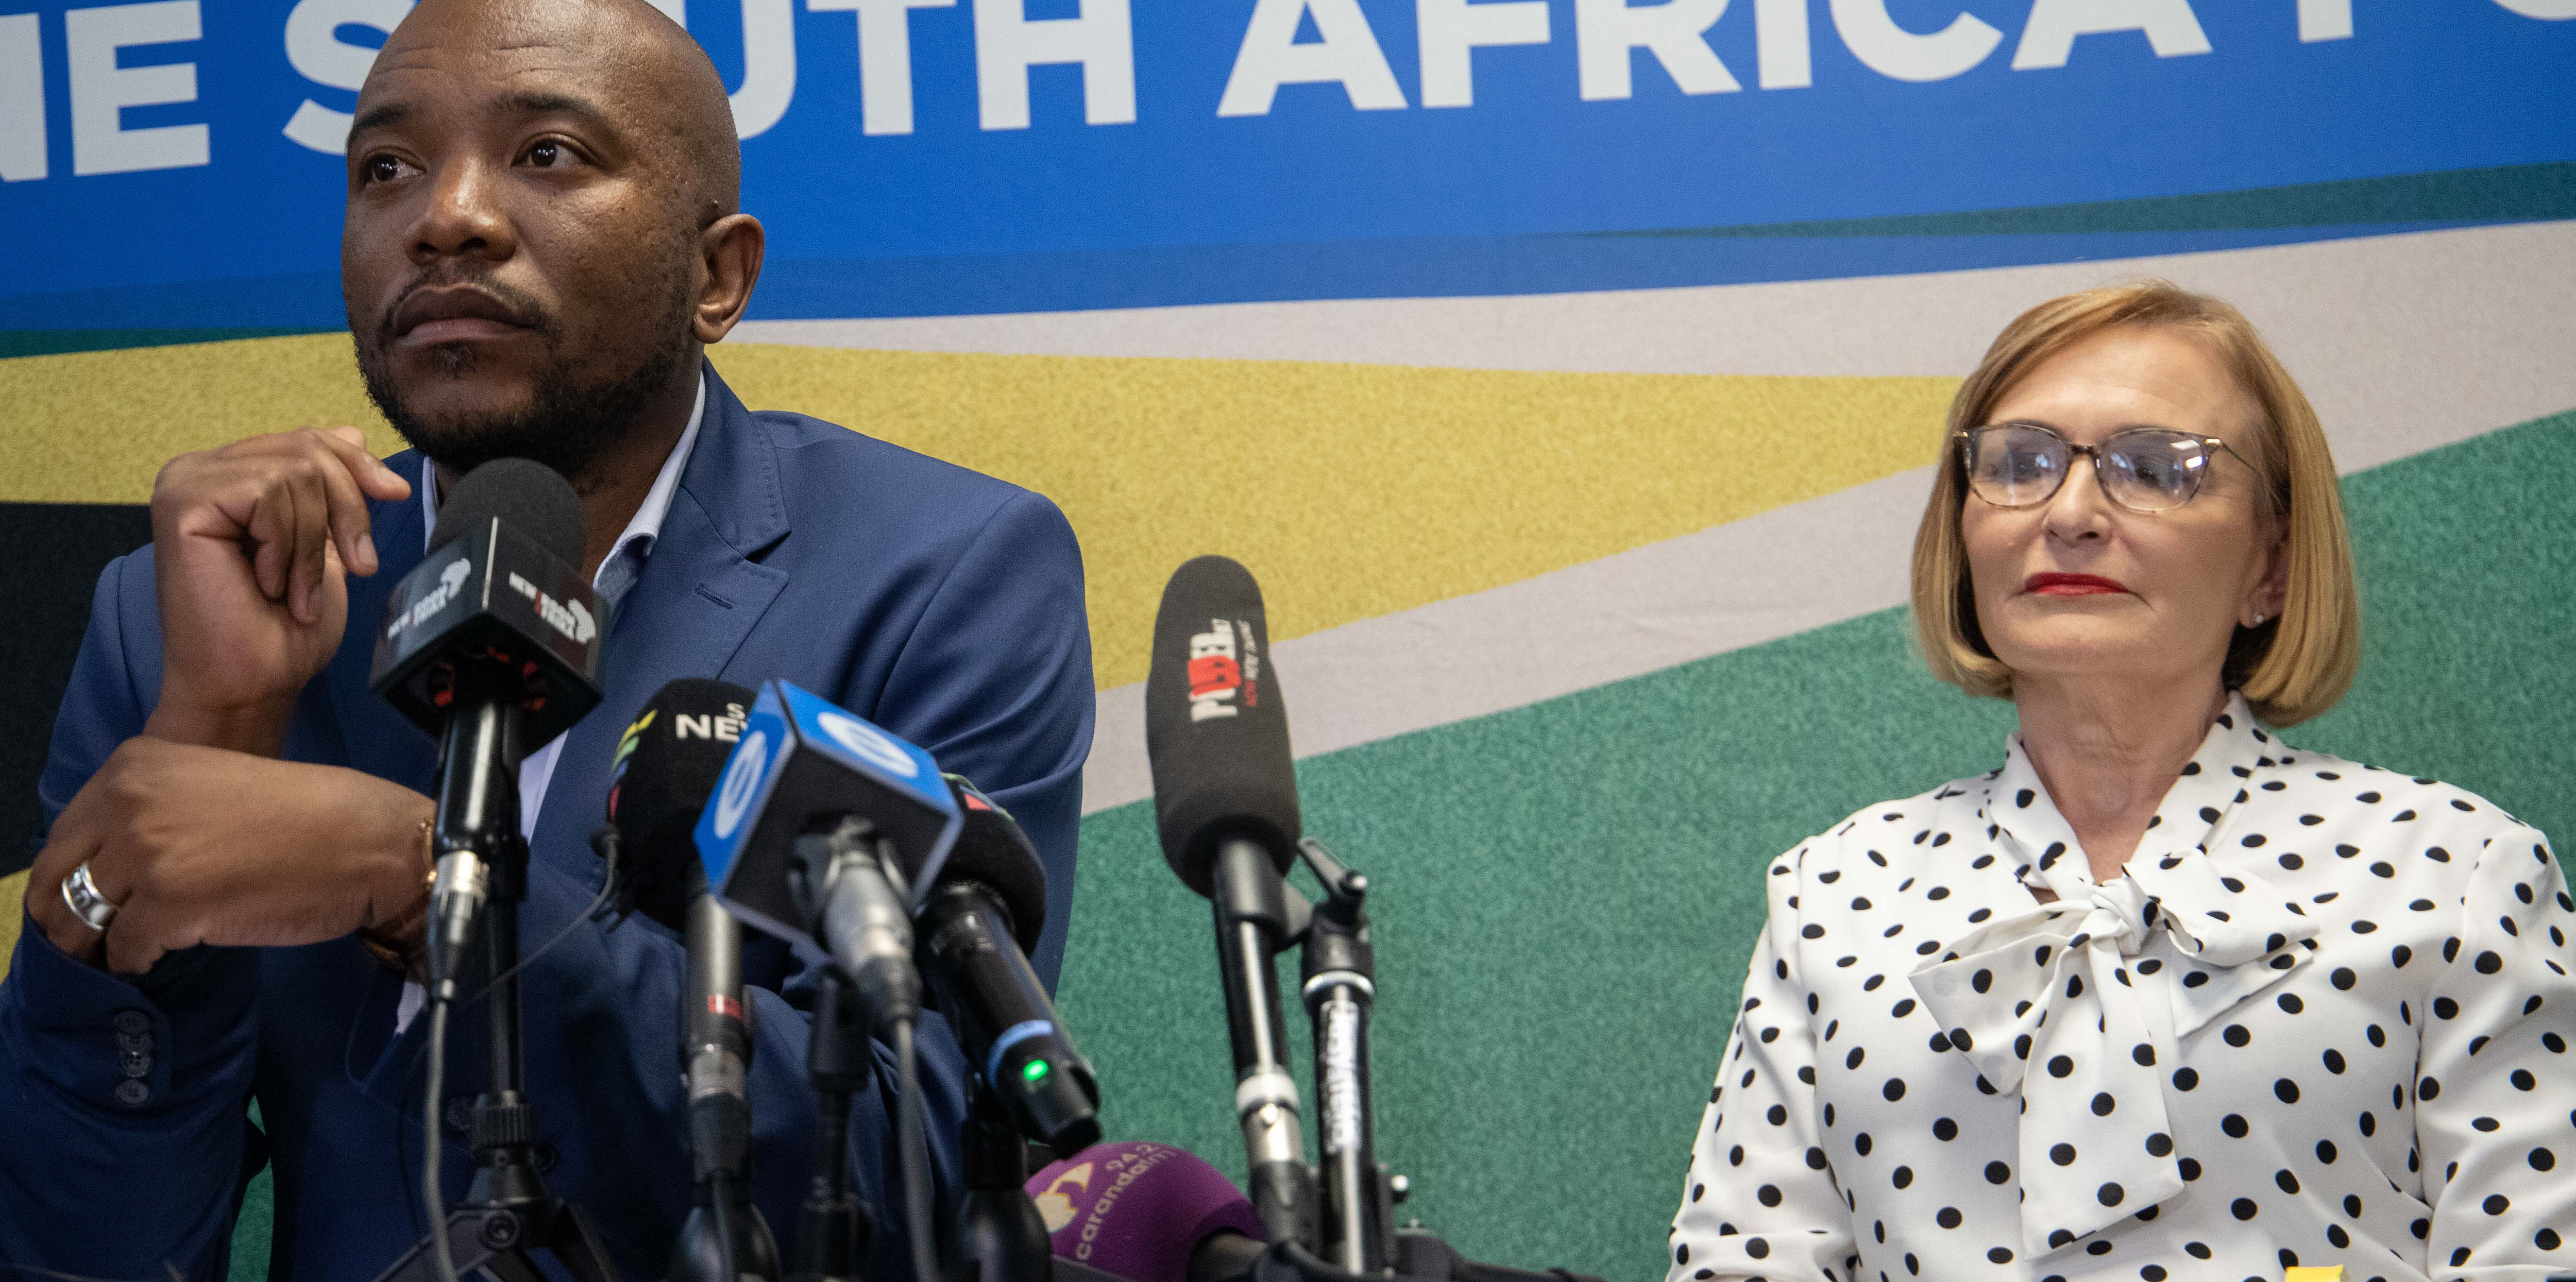 Helen Zille to 'stay in my lane' after winning new DA position